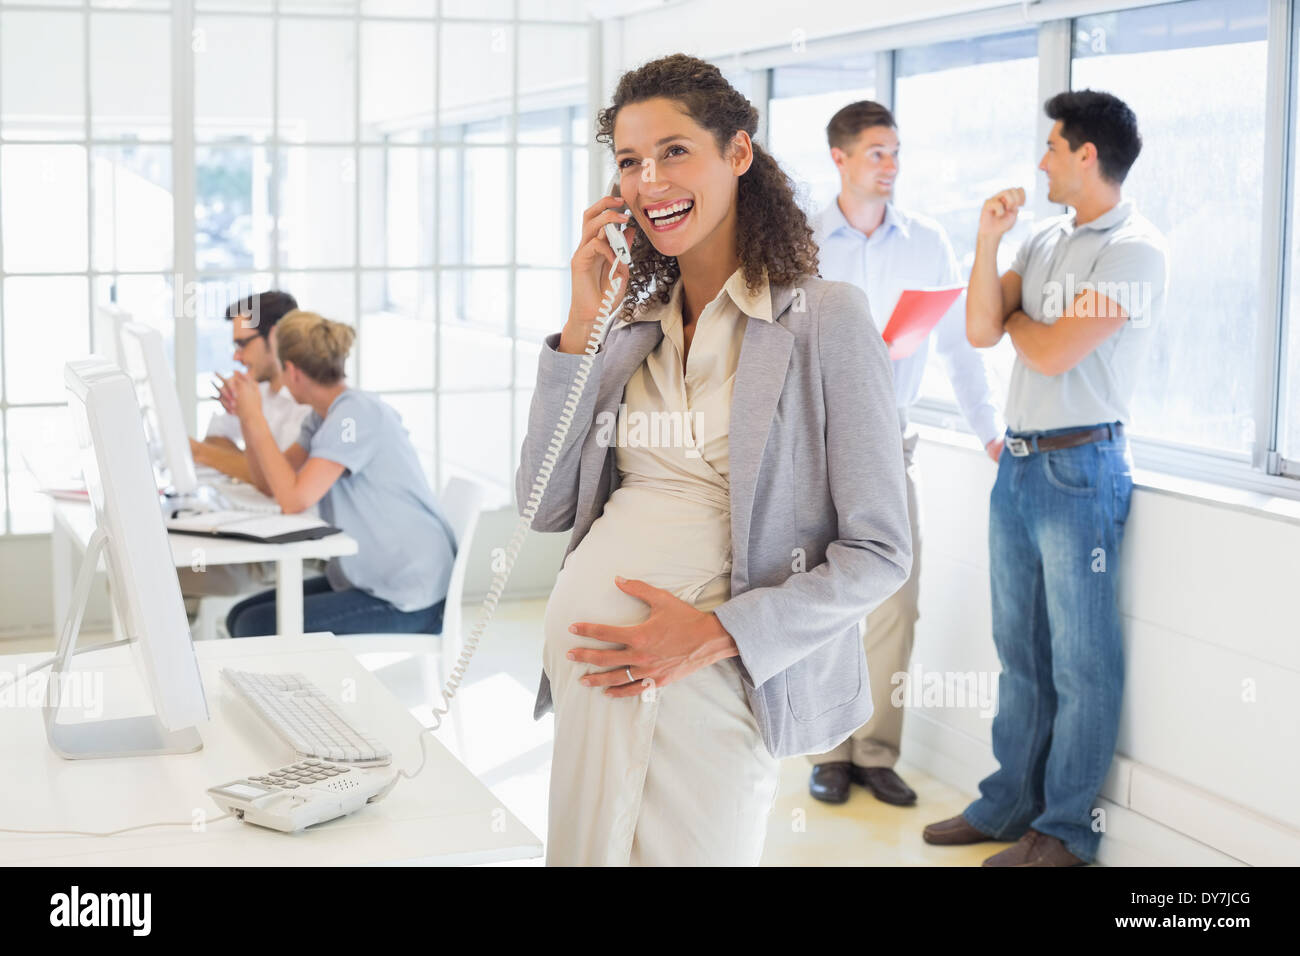 Pregnant businesswoman talking on phone with team behind her Stock Photo